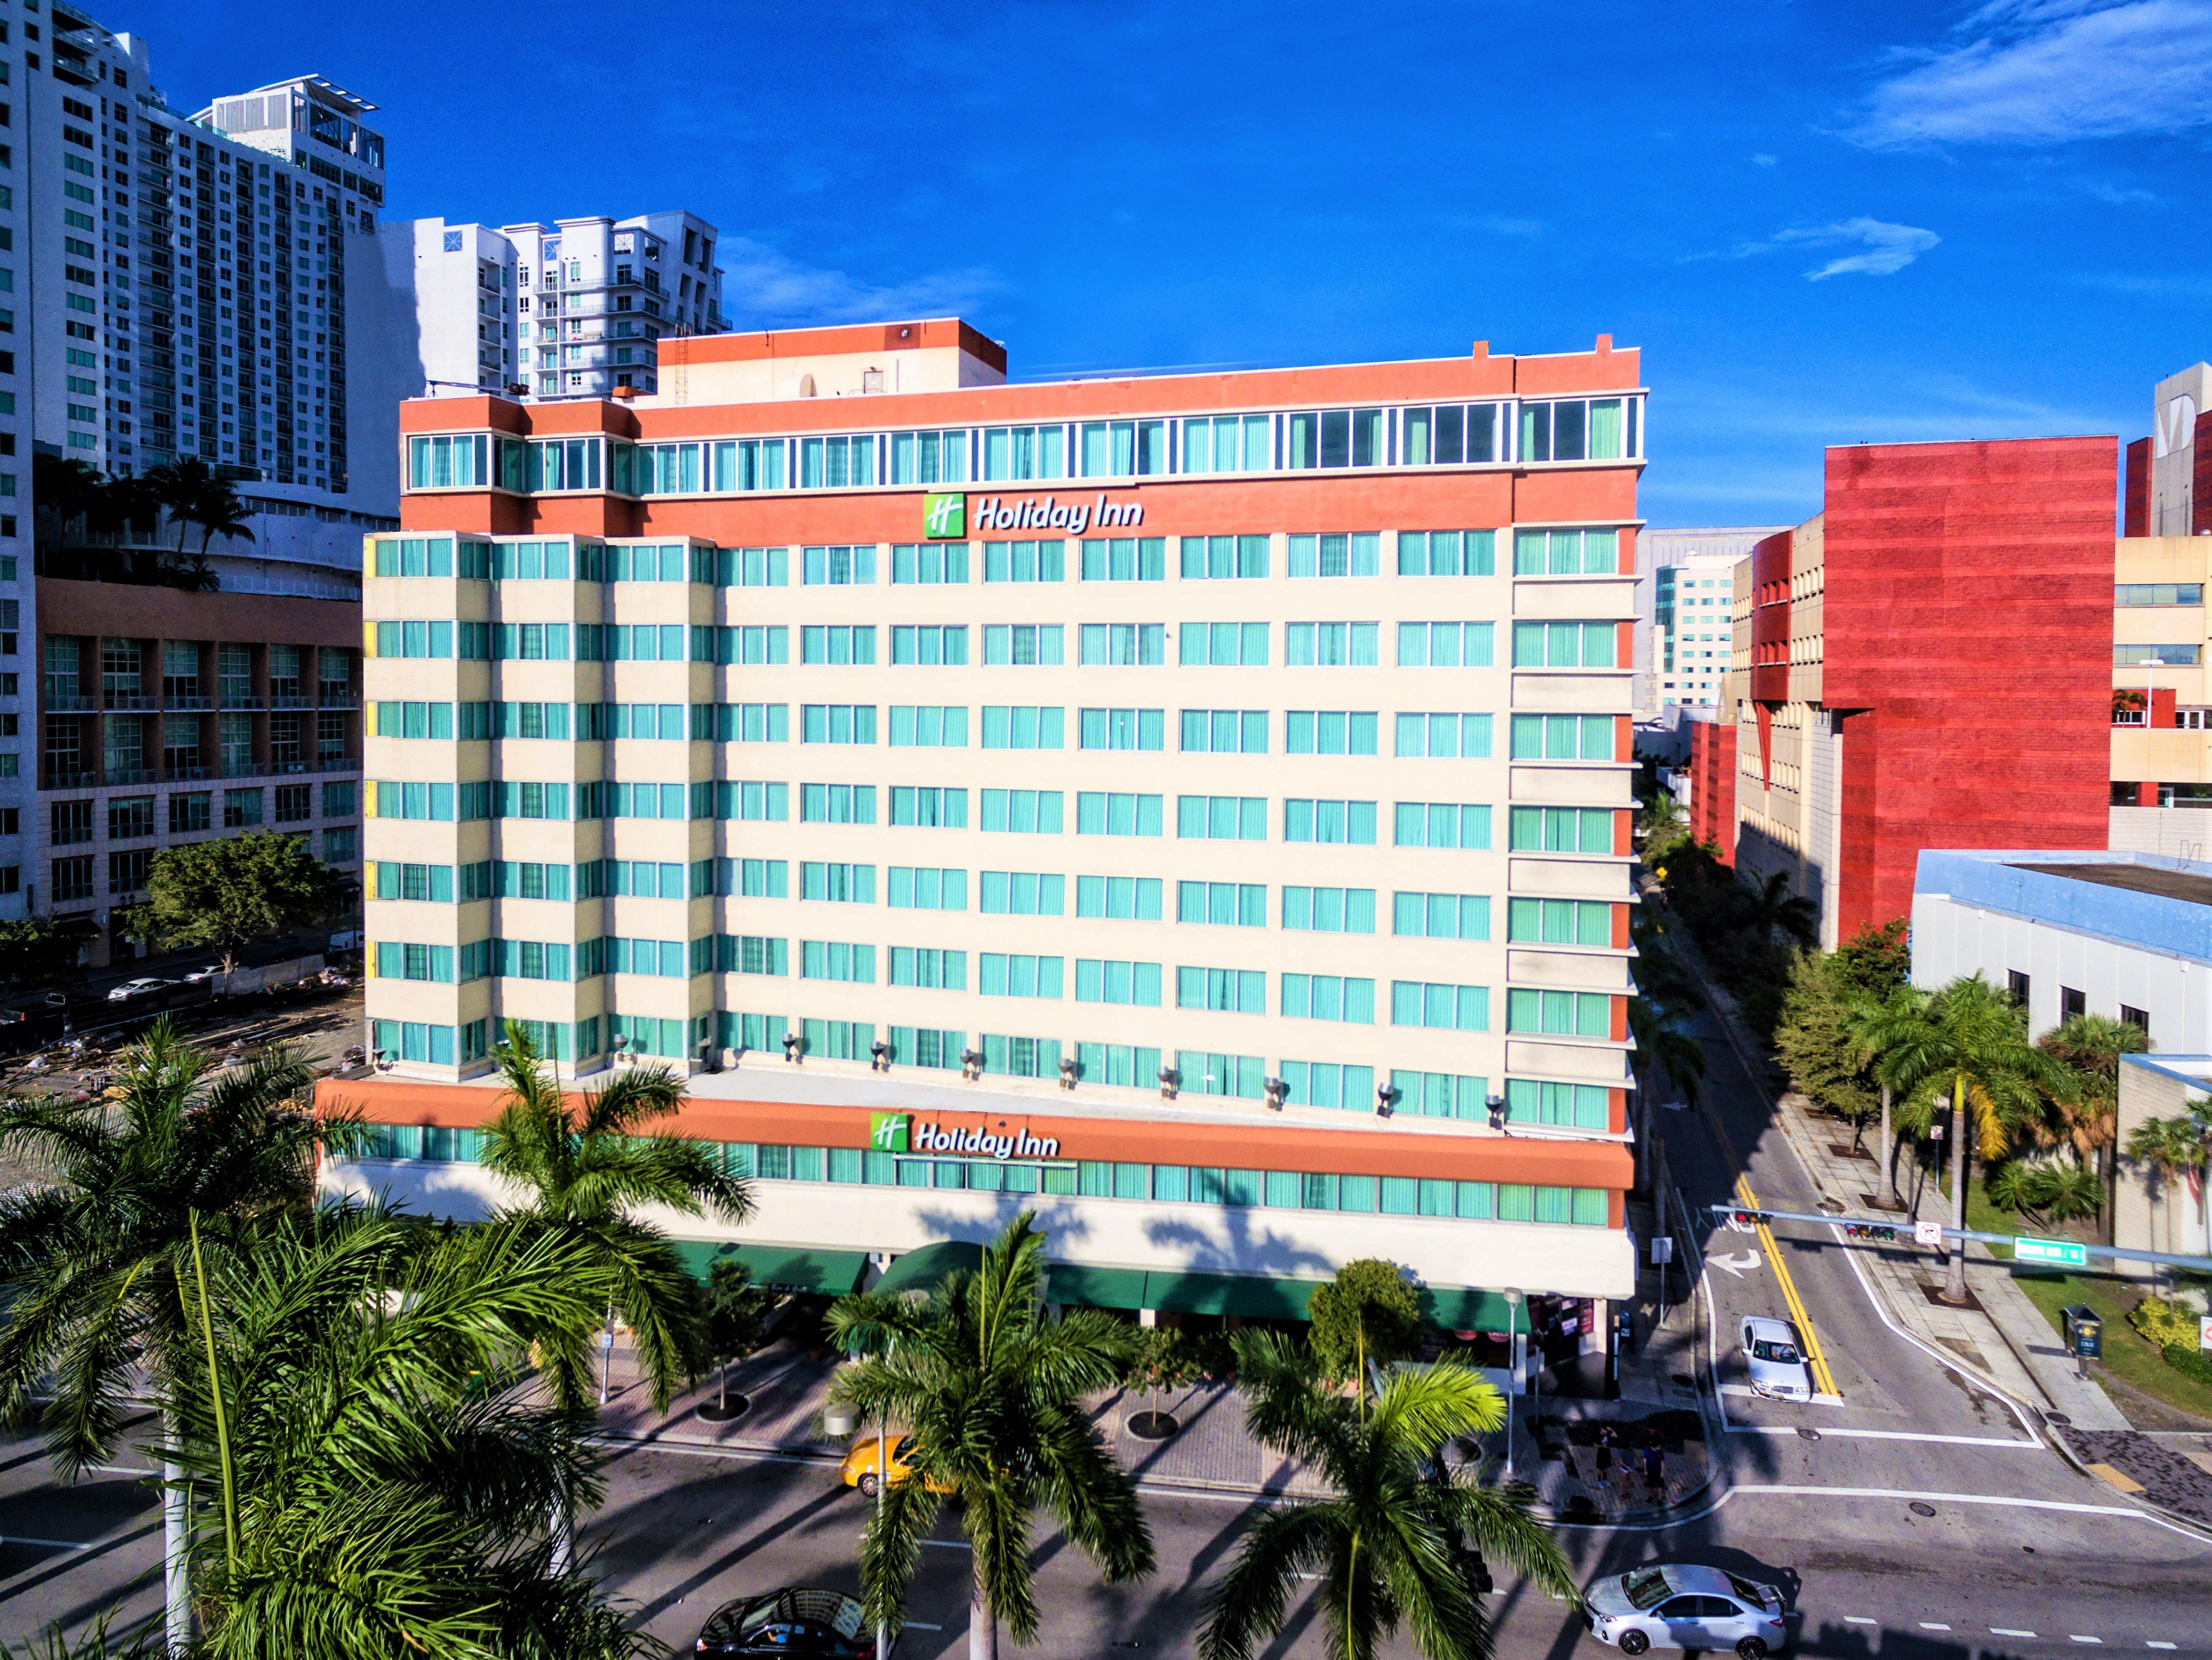 Holiday Inn Hotels In Miami Florida